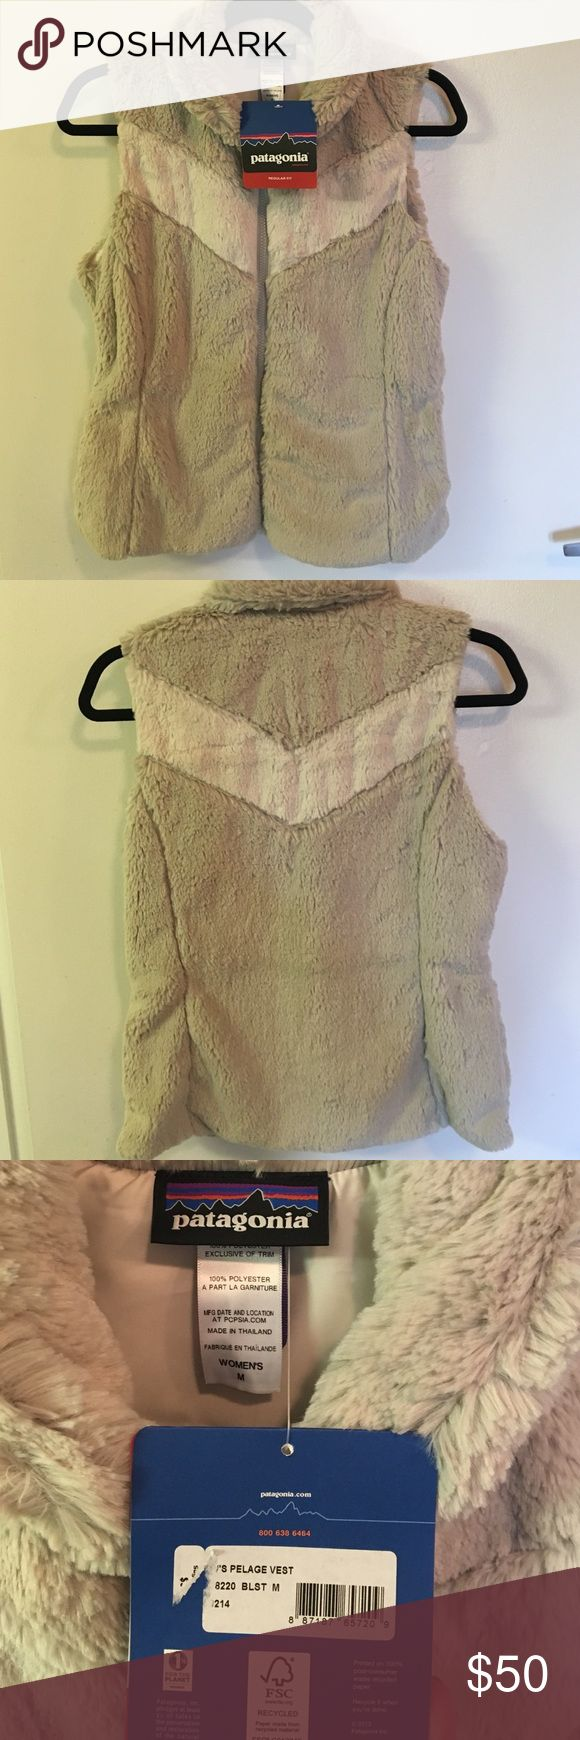 NEW Patagonia Pelage Furry Vest- Size Medium NEW WITH TAGS Patagonia Pelage cream furry vest, size medium. 100% polyester material, but is incredibly soft and comfortable. Has never been worn- I got it as a gift. Does not have pockets. Patagonia Jackets & Coats Vests